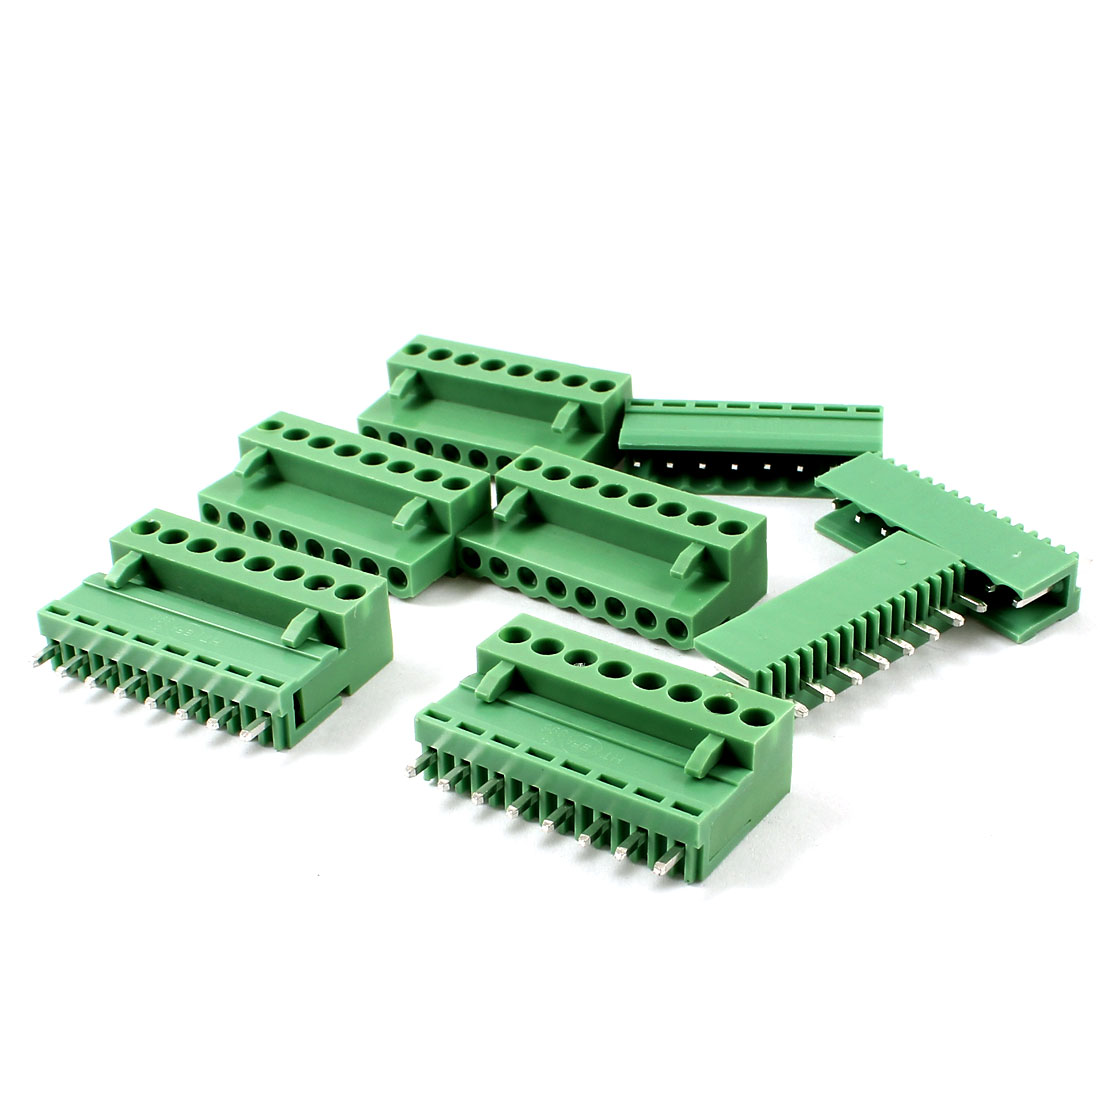 5 Pairs 8 Pin 3.96mm Screw Pluggable Terminal Block Connector Green 300V 10A